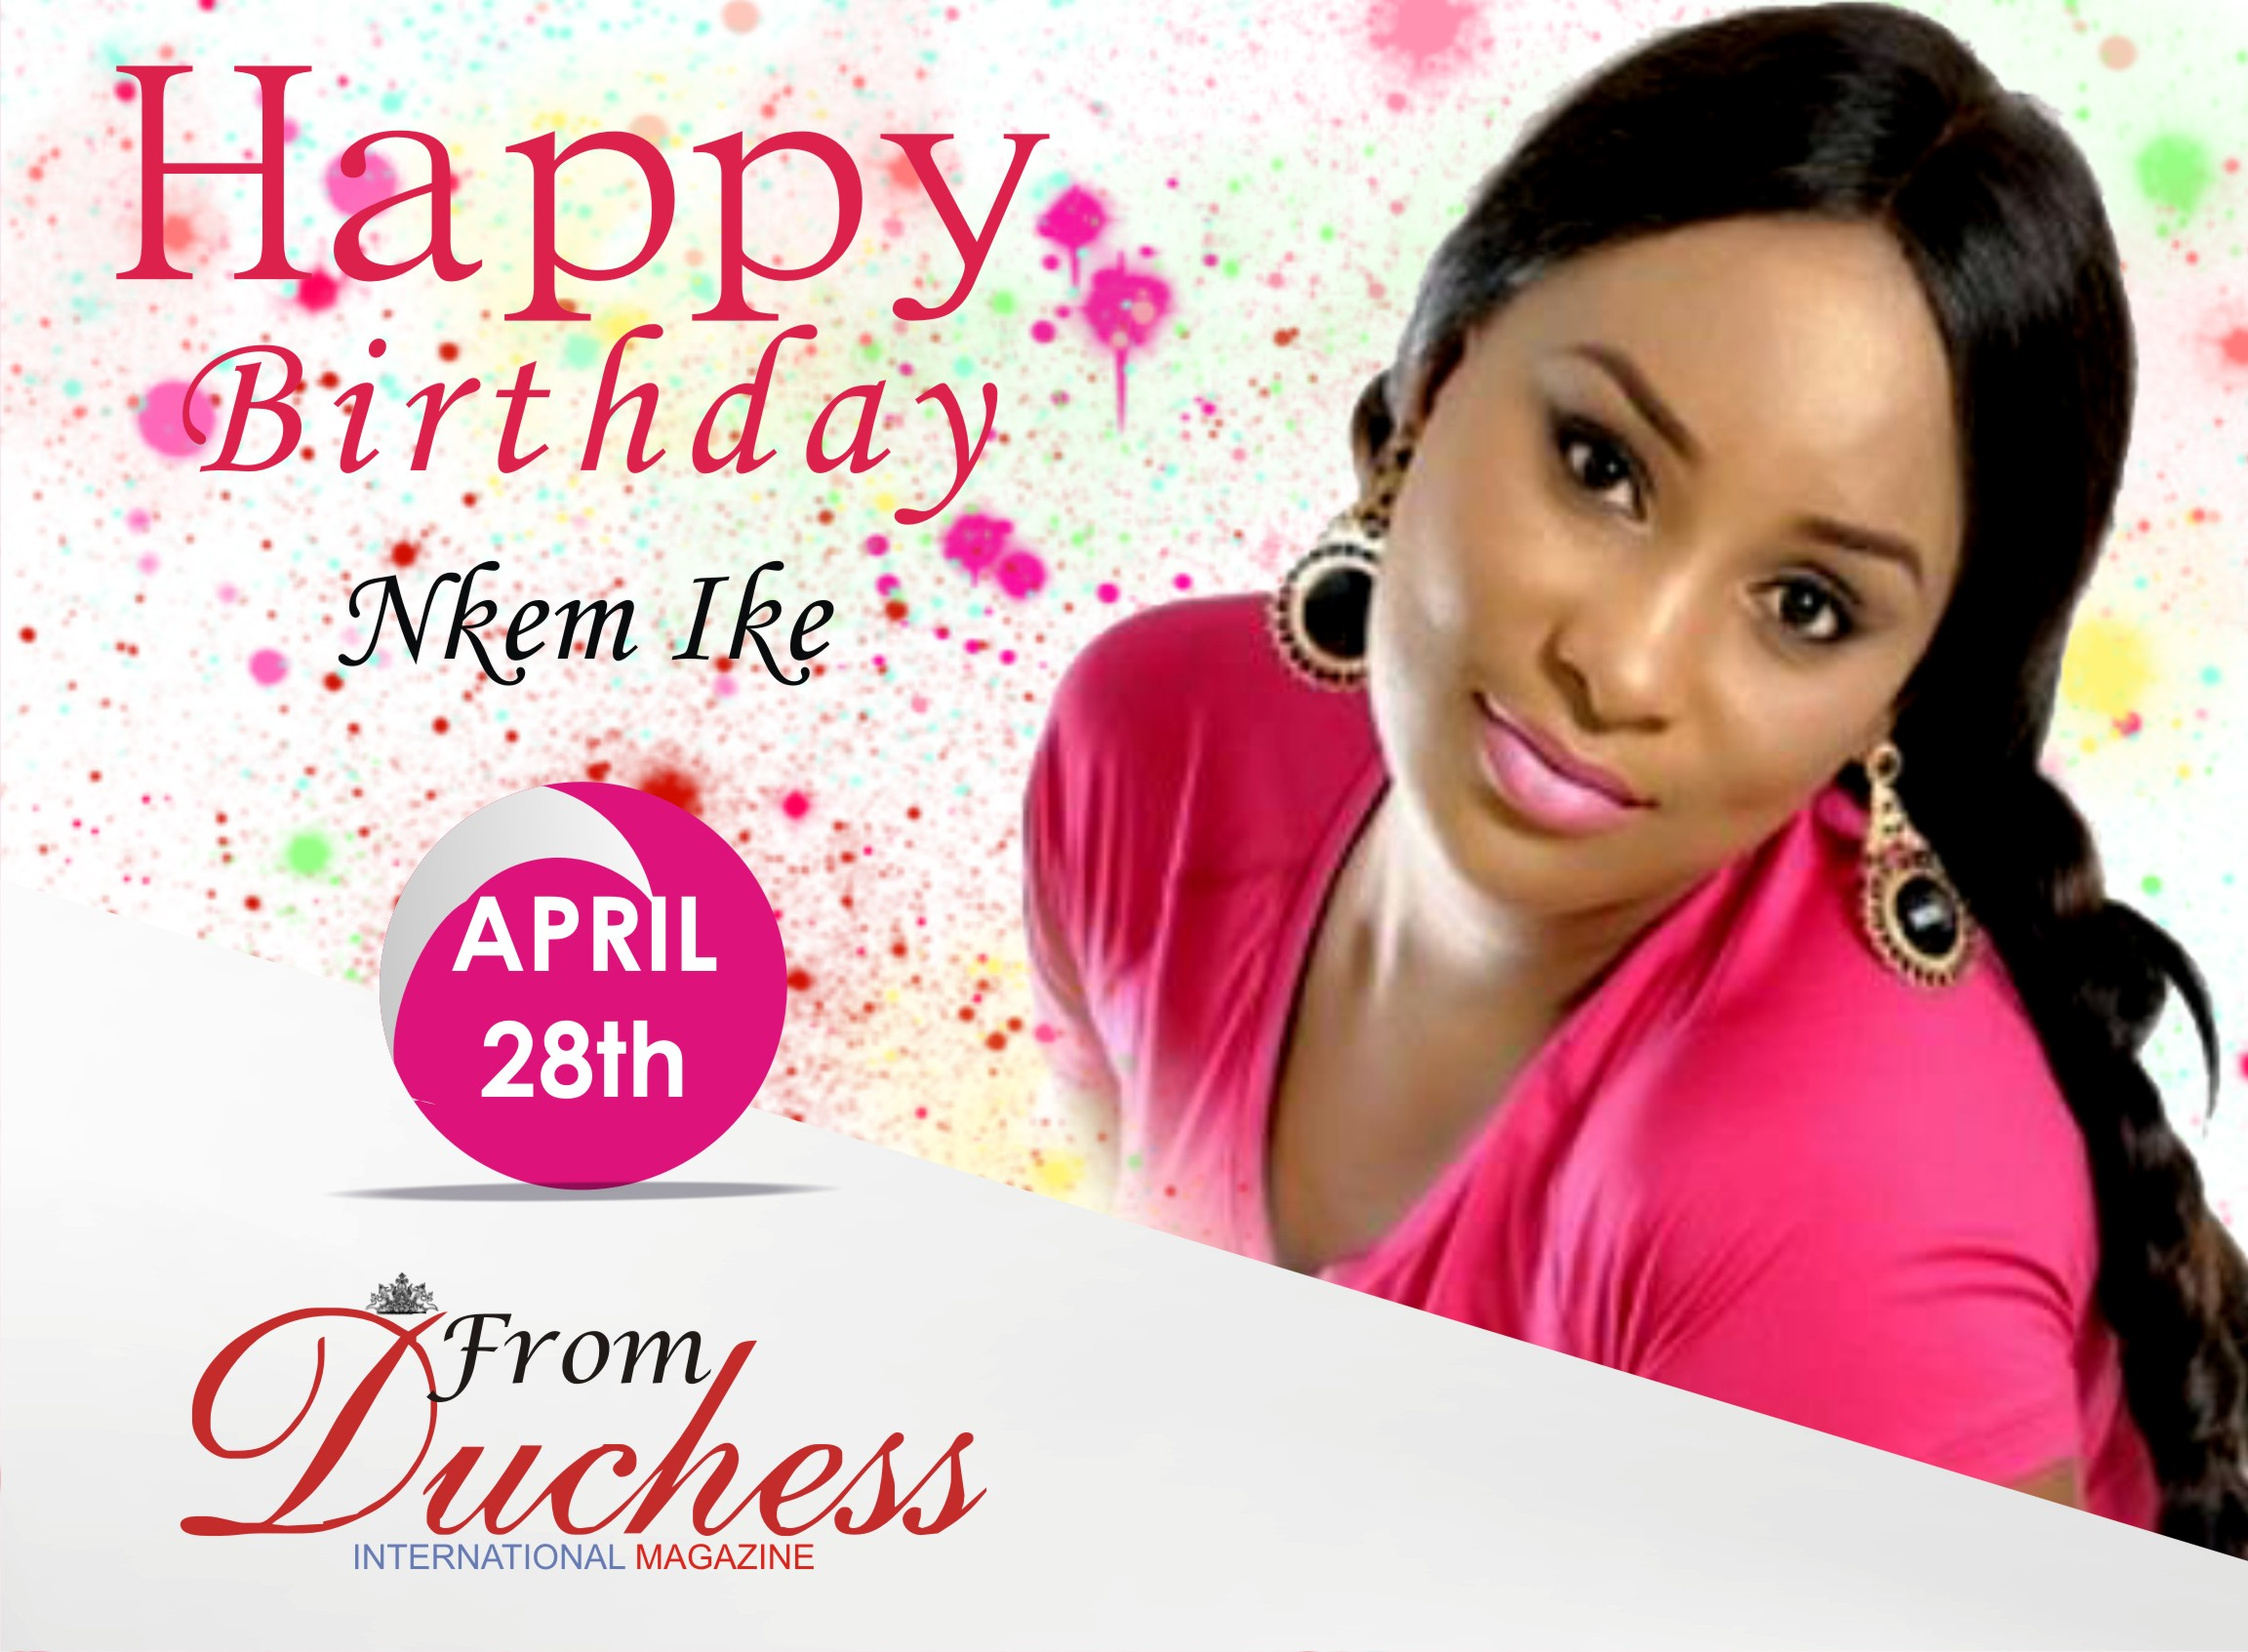 Nolly wood Star Actress Nkem Ike is a year older today.